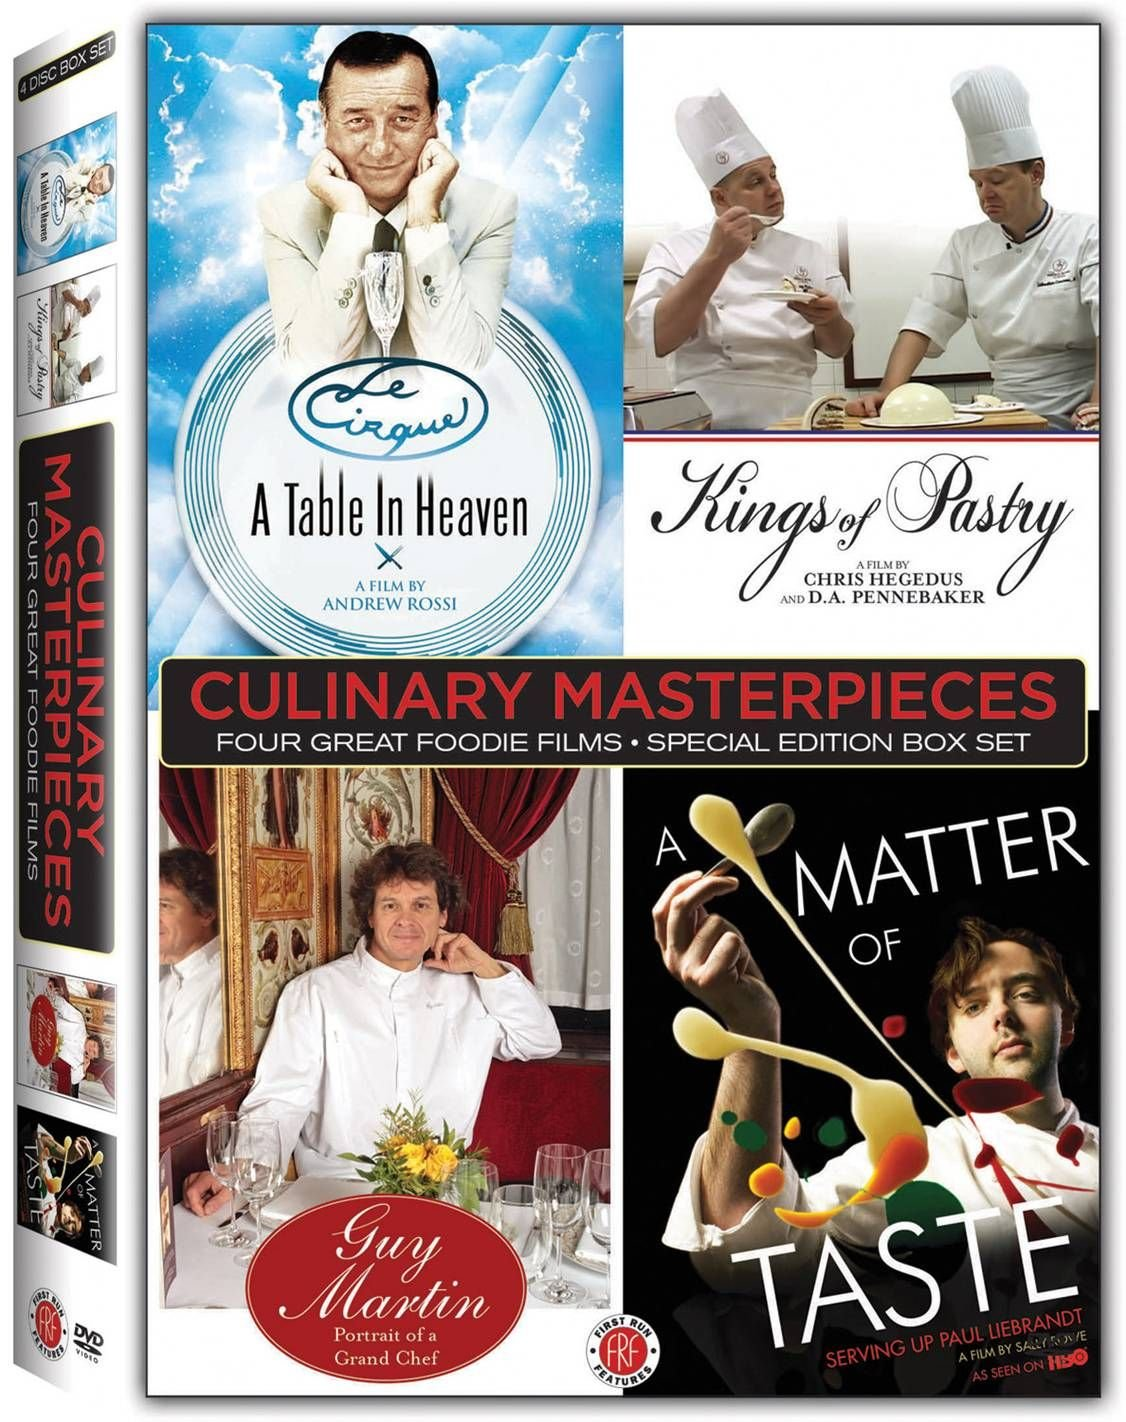 DVD : Guy Martin - Culinary Masterpieces: Four Great Foodie Films (Boxed Set, Widescreen, 4PC)